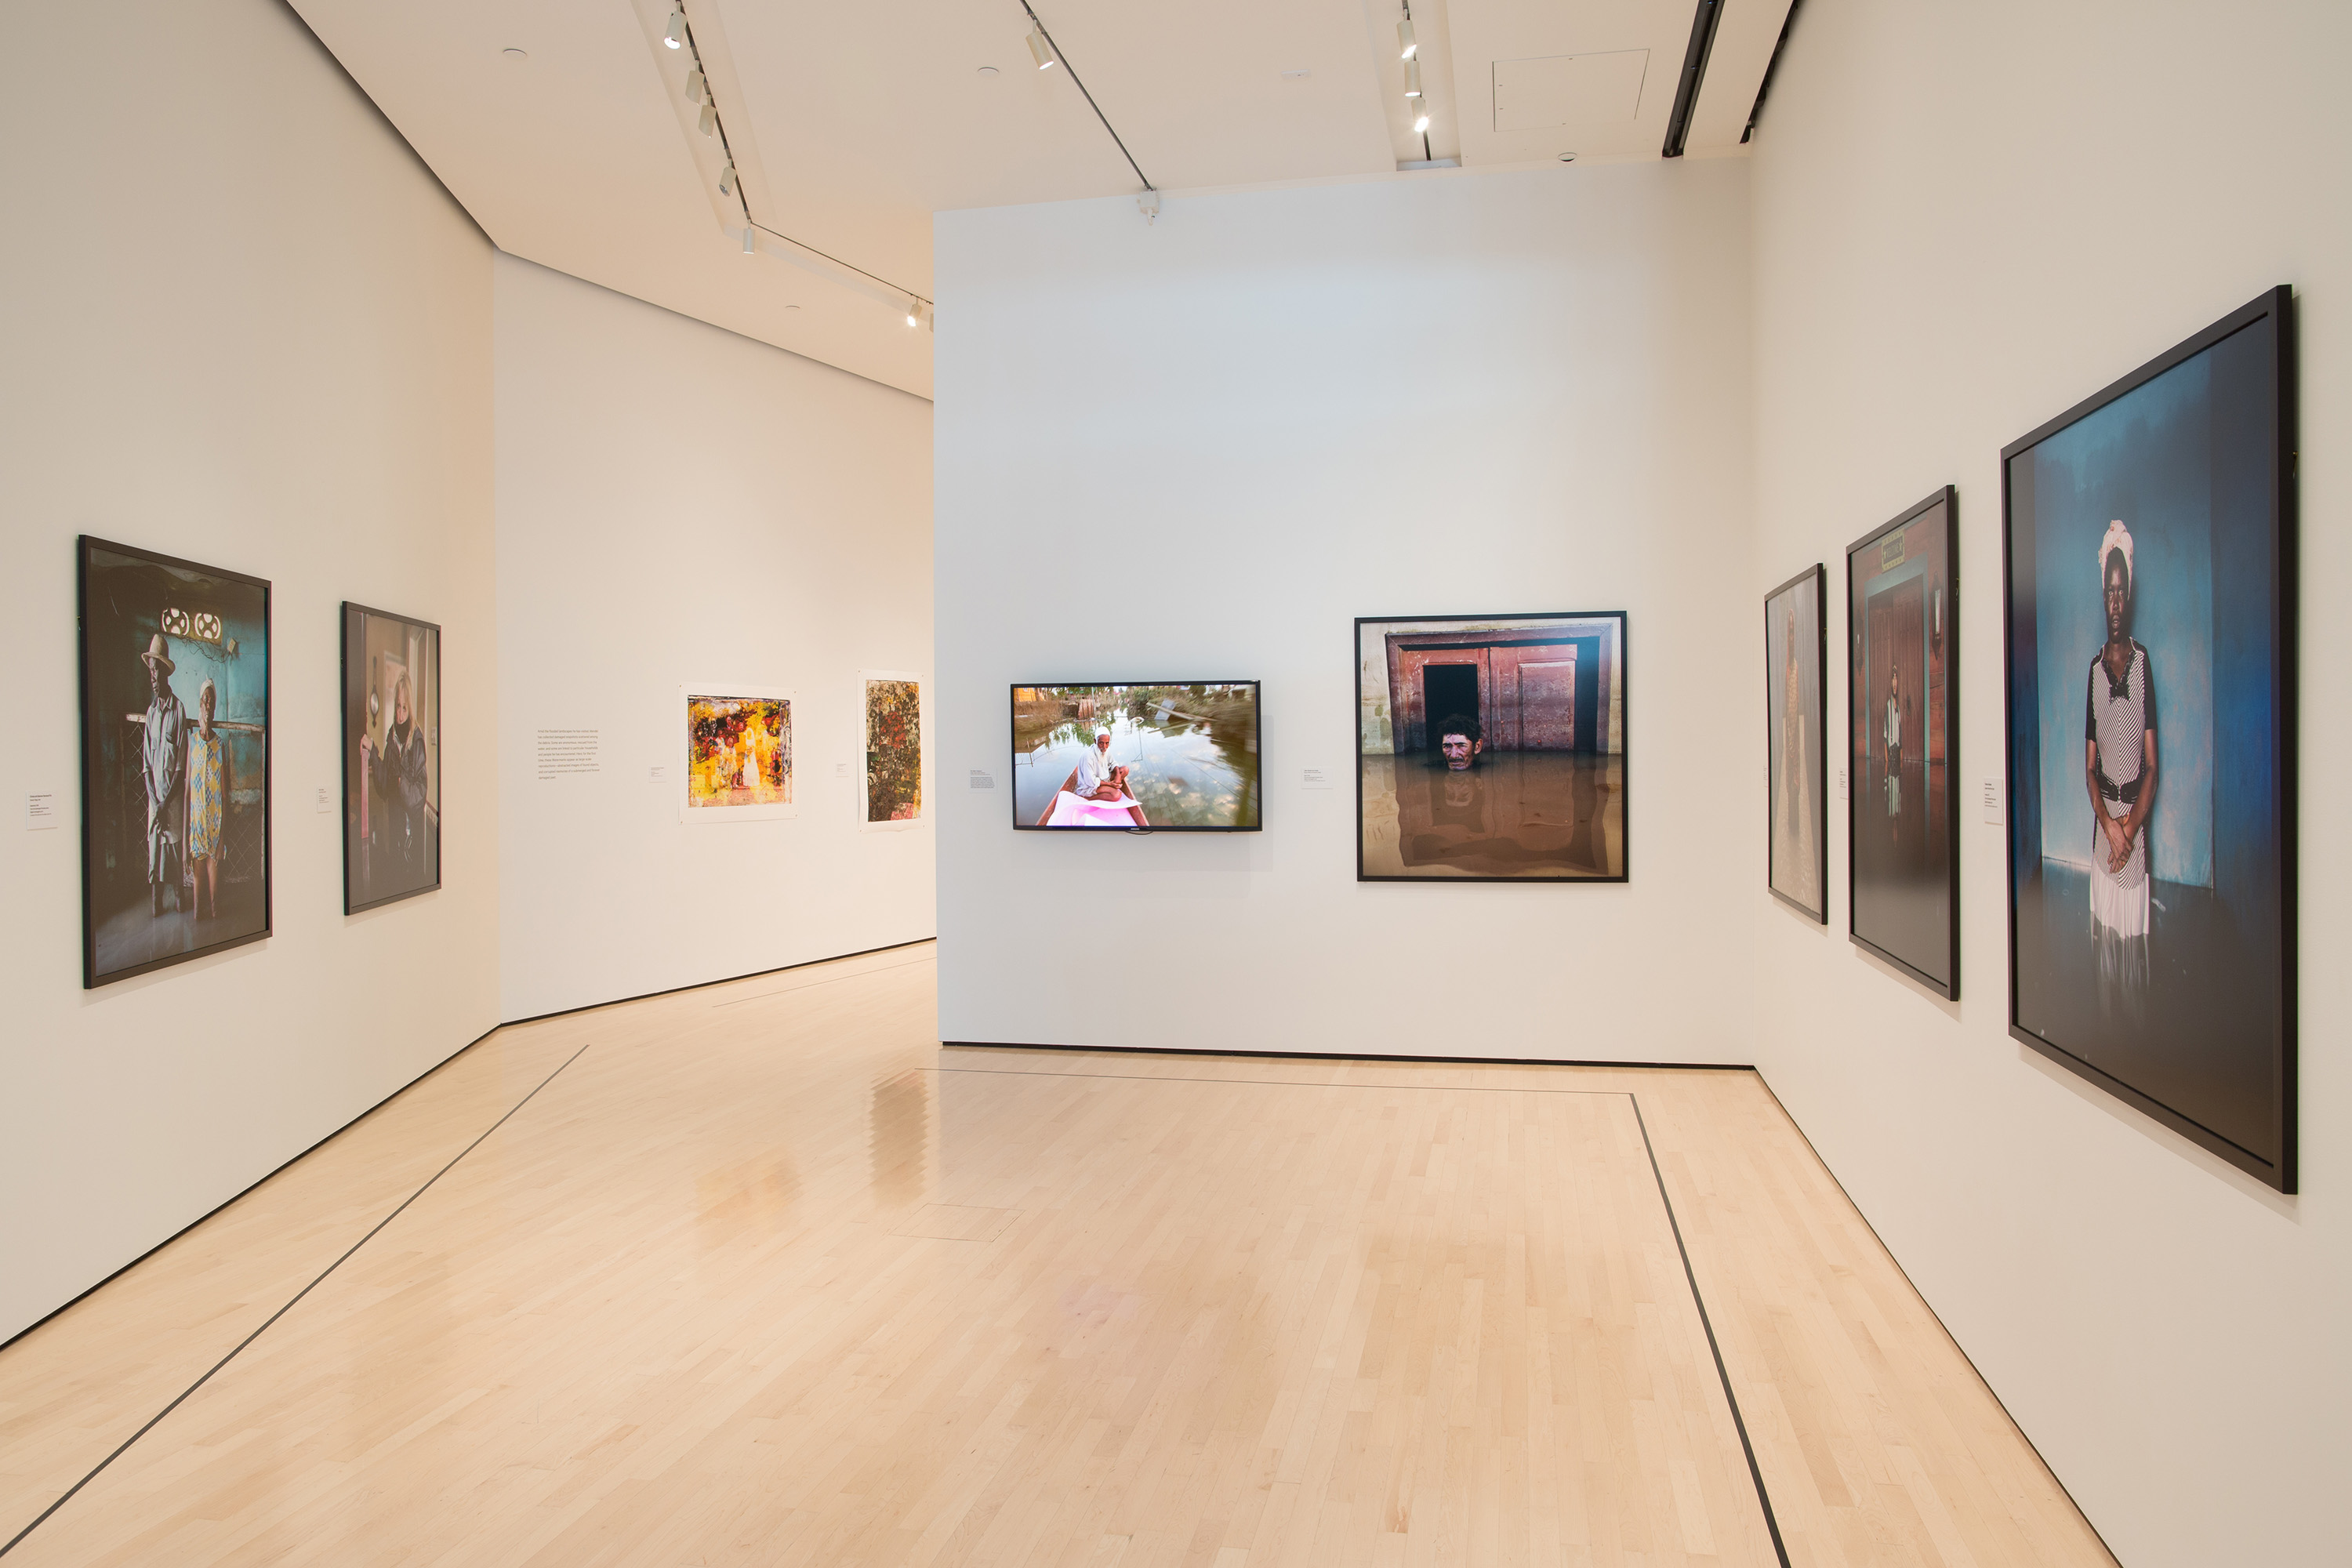 <i>Gideon Mendel: Drowning World</i>, installation view at the Eli and Edythe Broad Art Museum at Michigan State University, 2016. Photo: Eat Pomegranate Photography